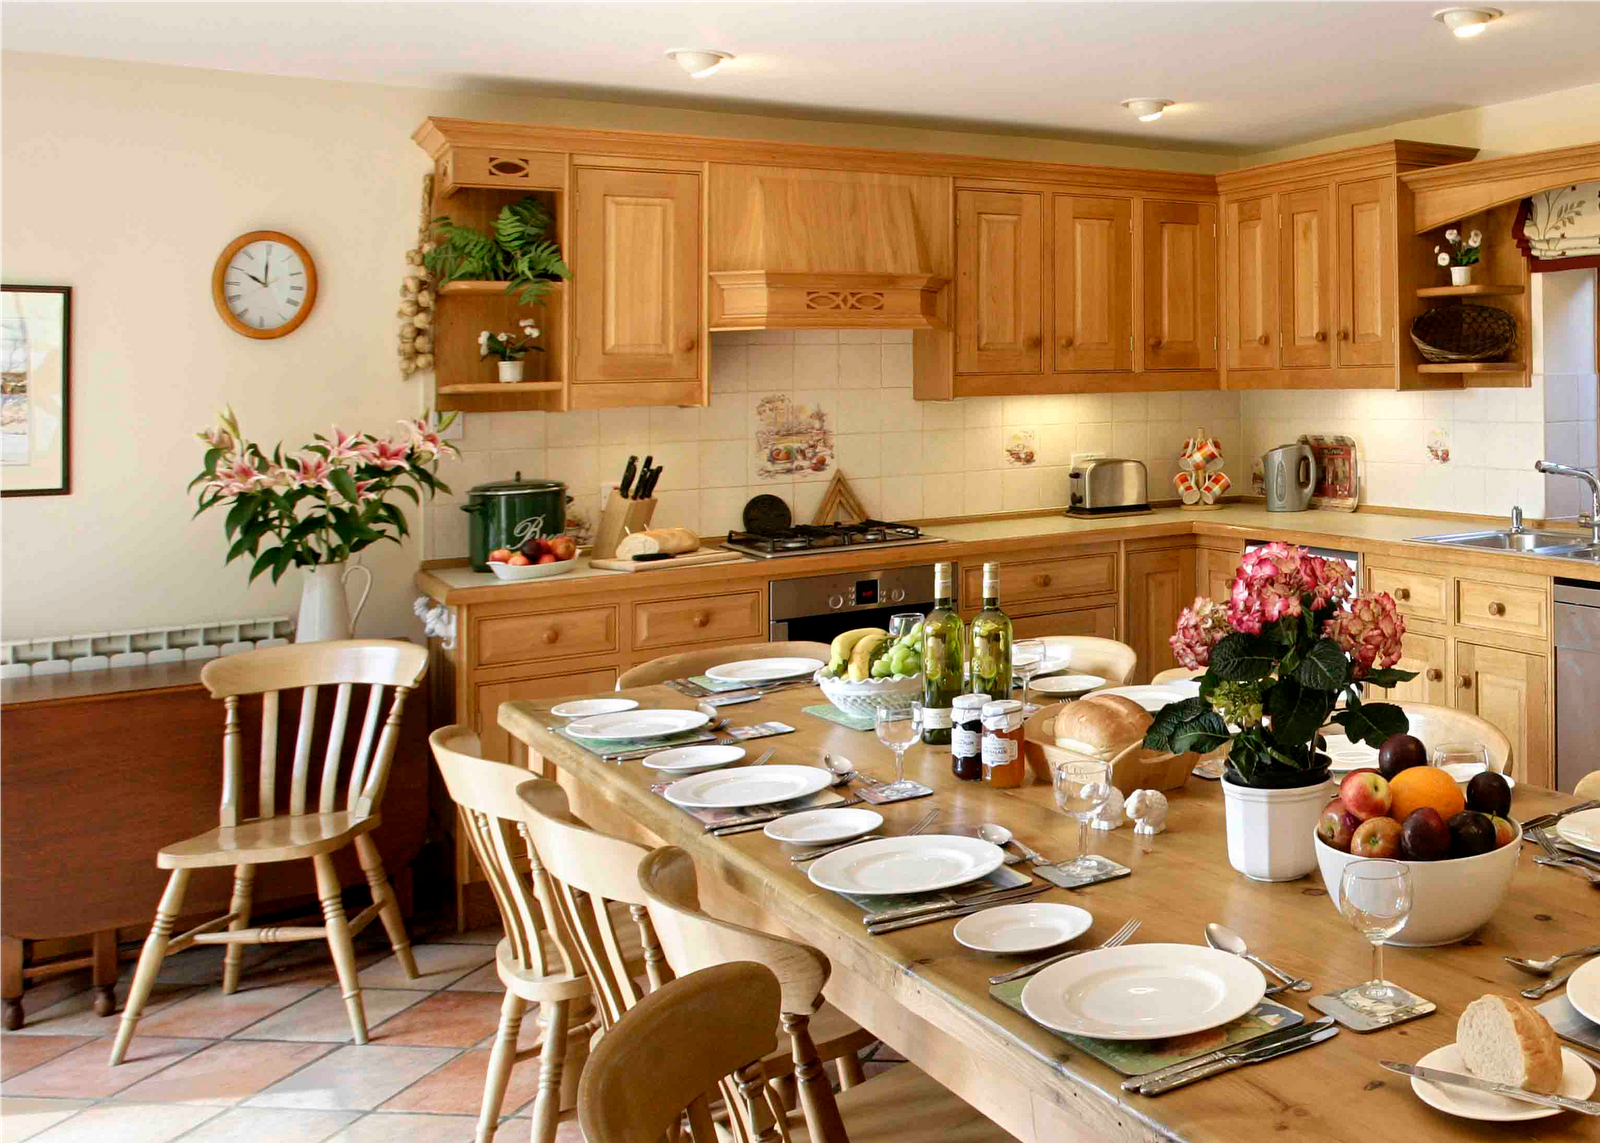 English country kitchen ideas room design ideas for Kitchen design ideas pictures